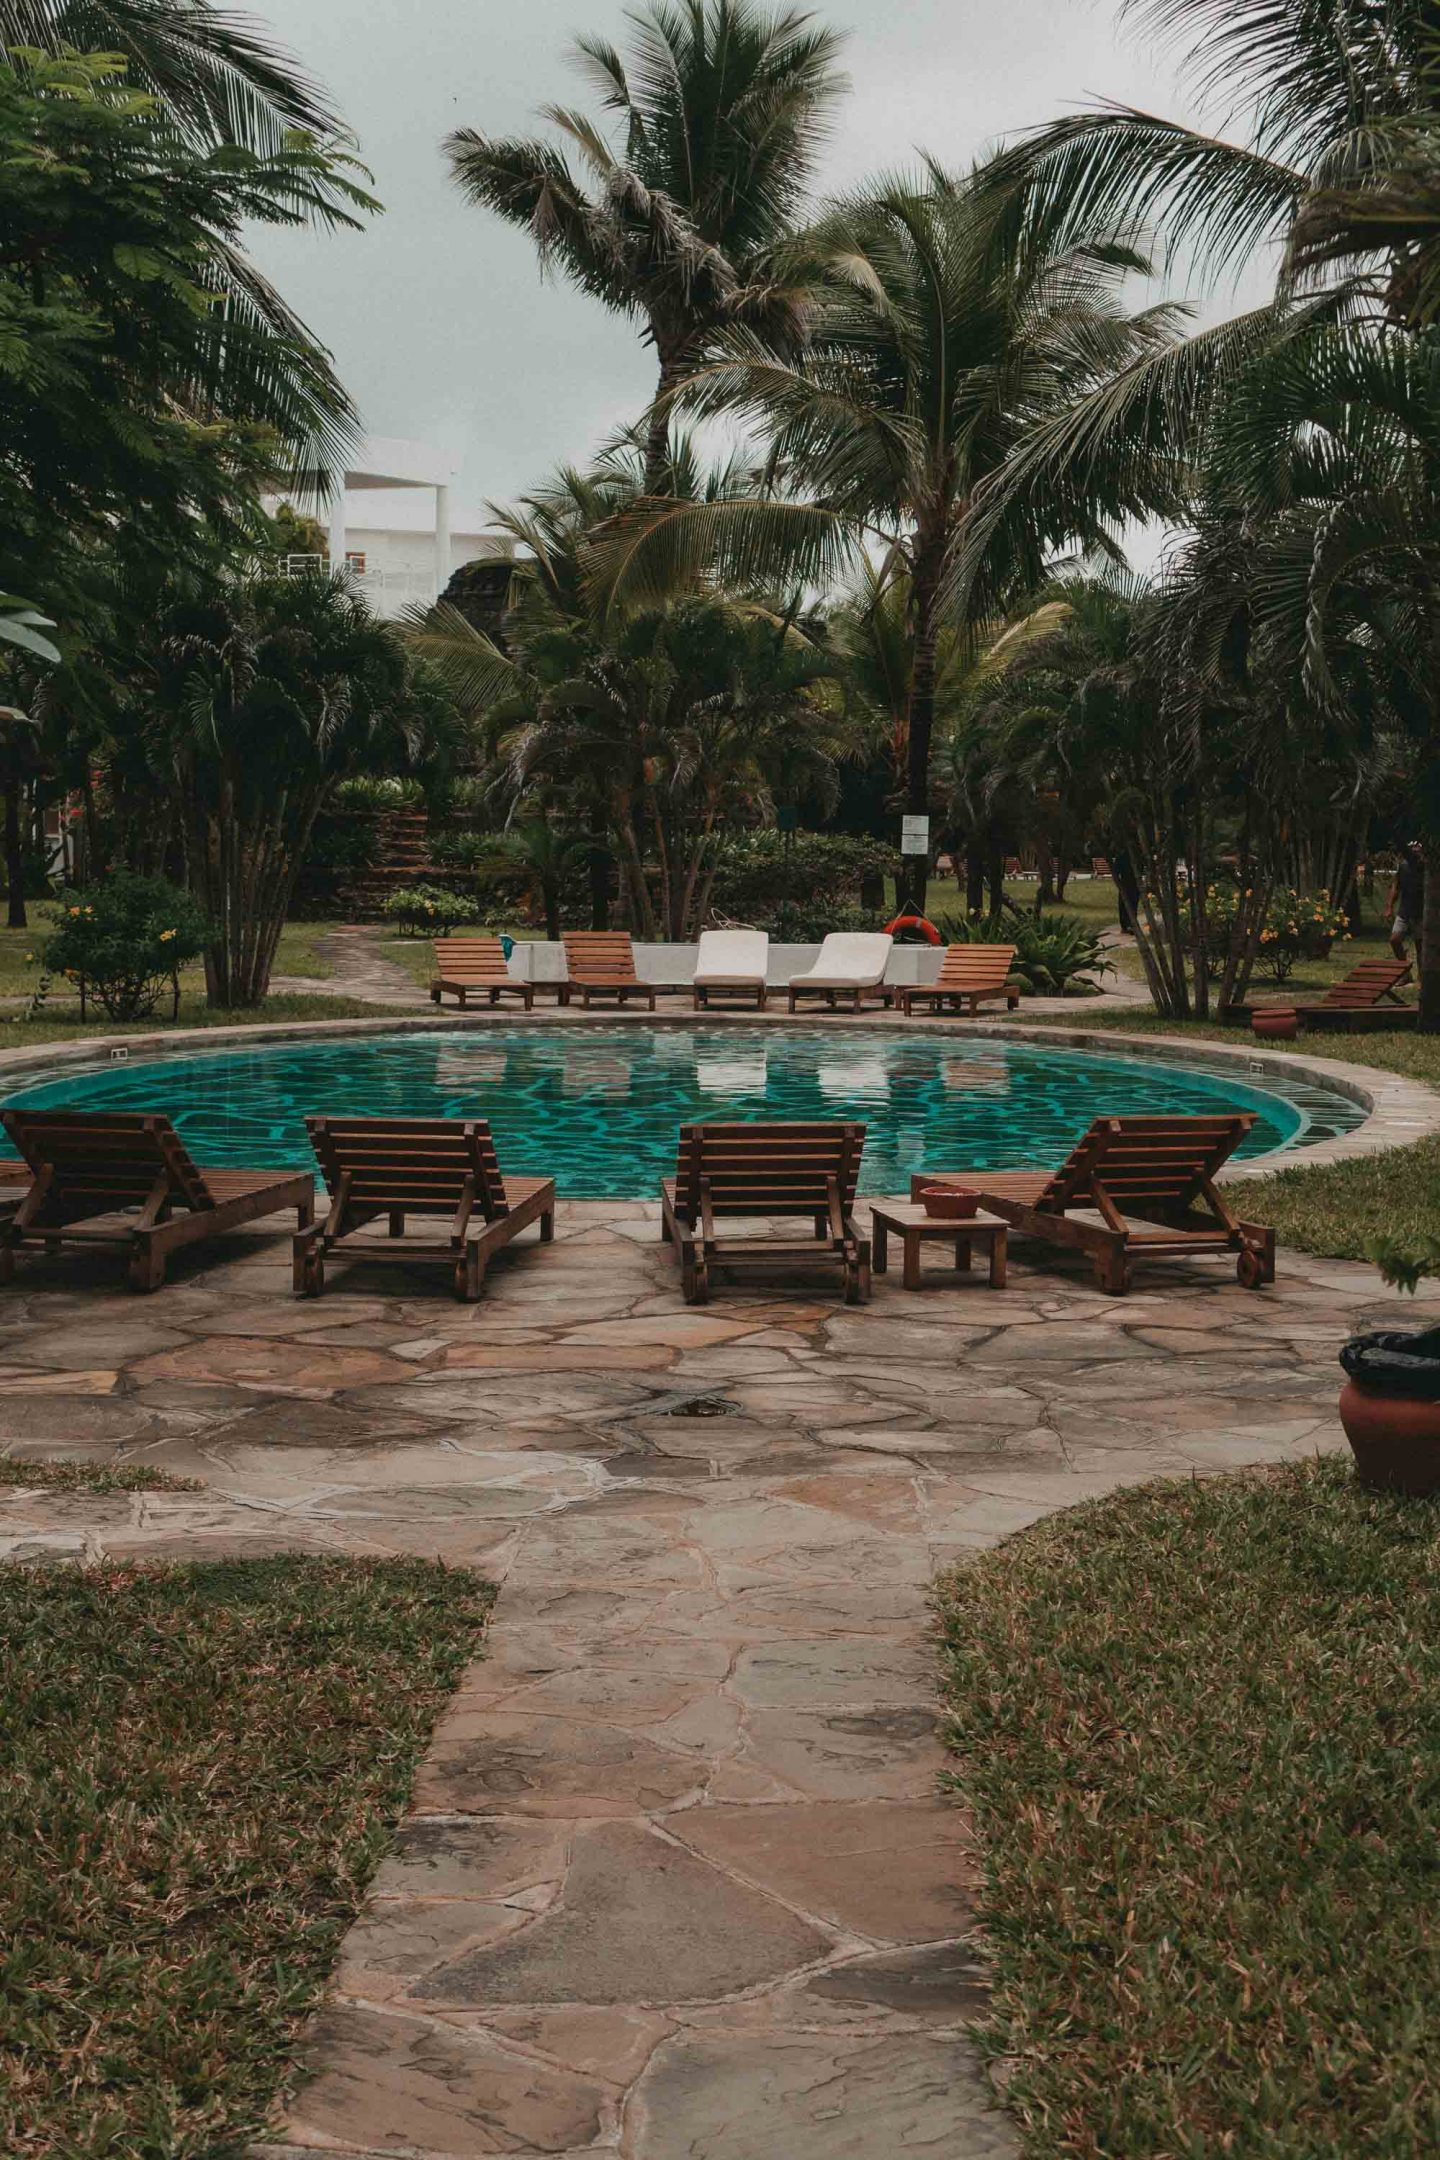 Urlaub in Kenia: Amani Beach Resort